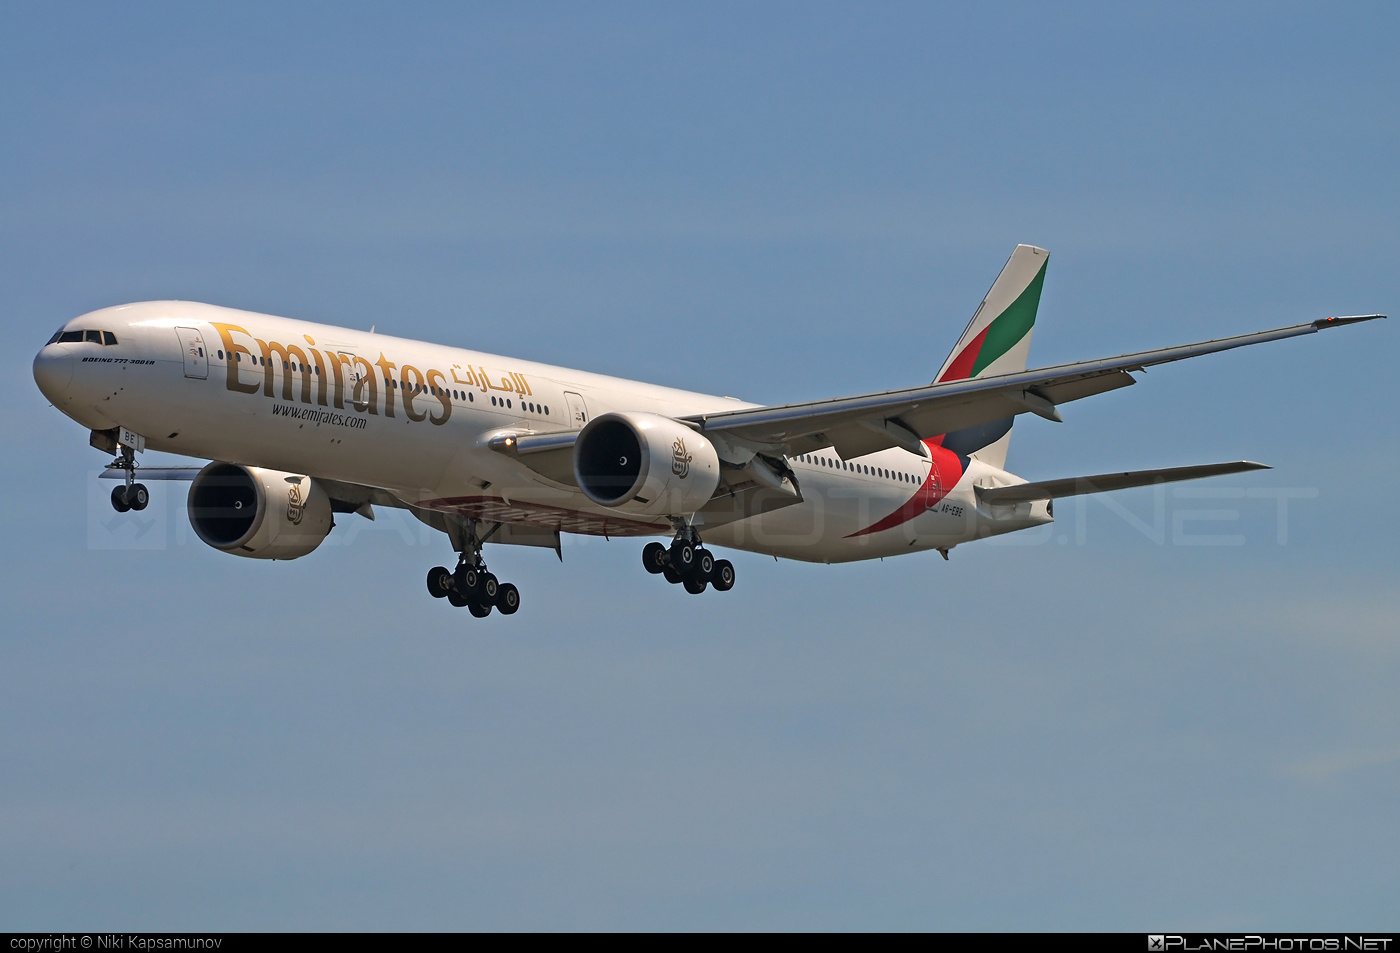 Boeing 777-300ER - A6-EBE operated by Emirates #b777 #b777er #boeing #boeing777 #emirates #tripleseven